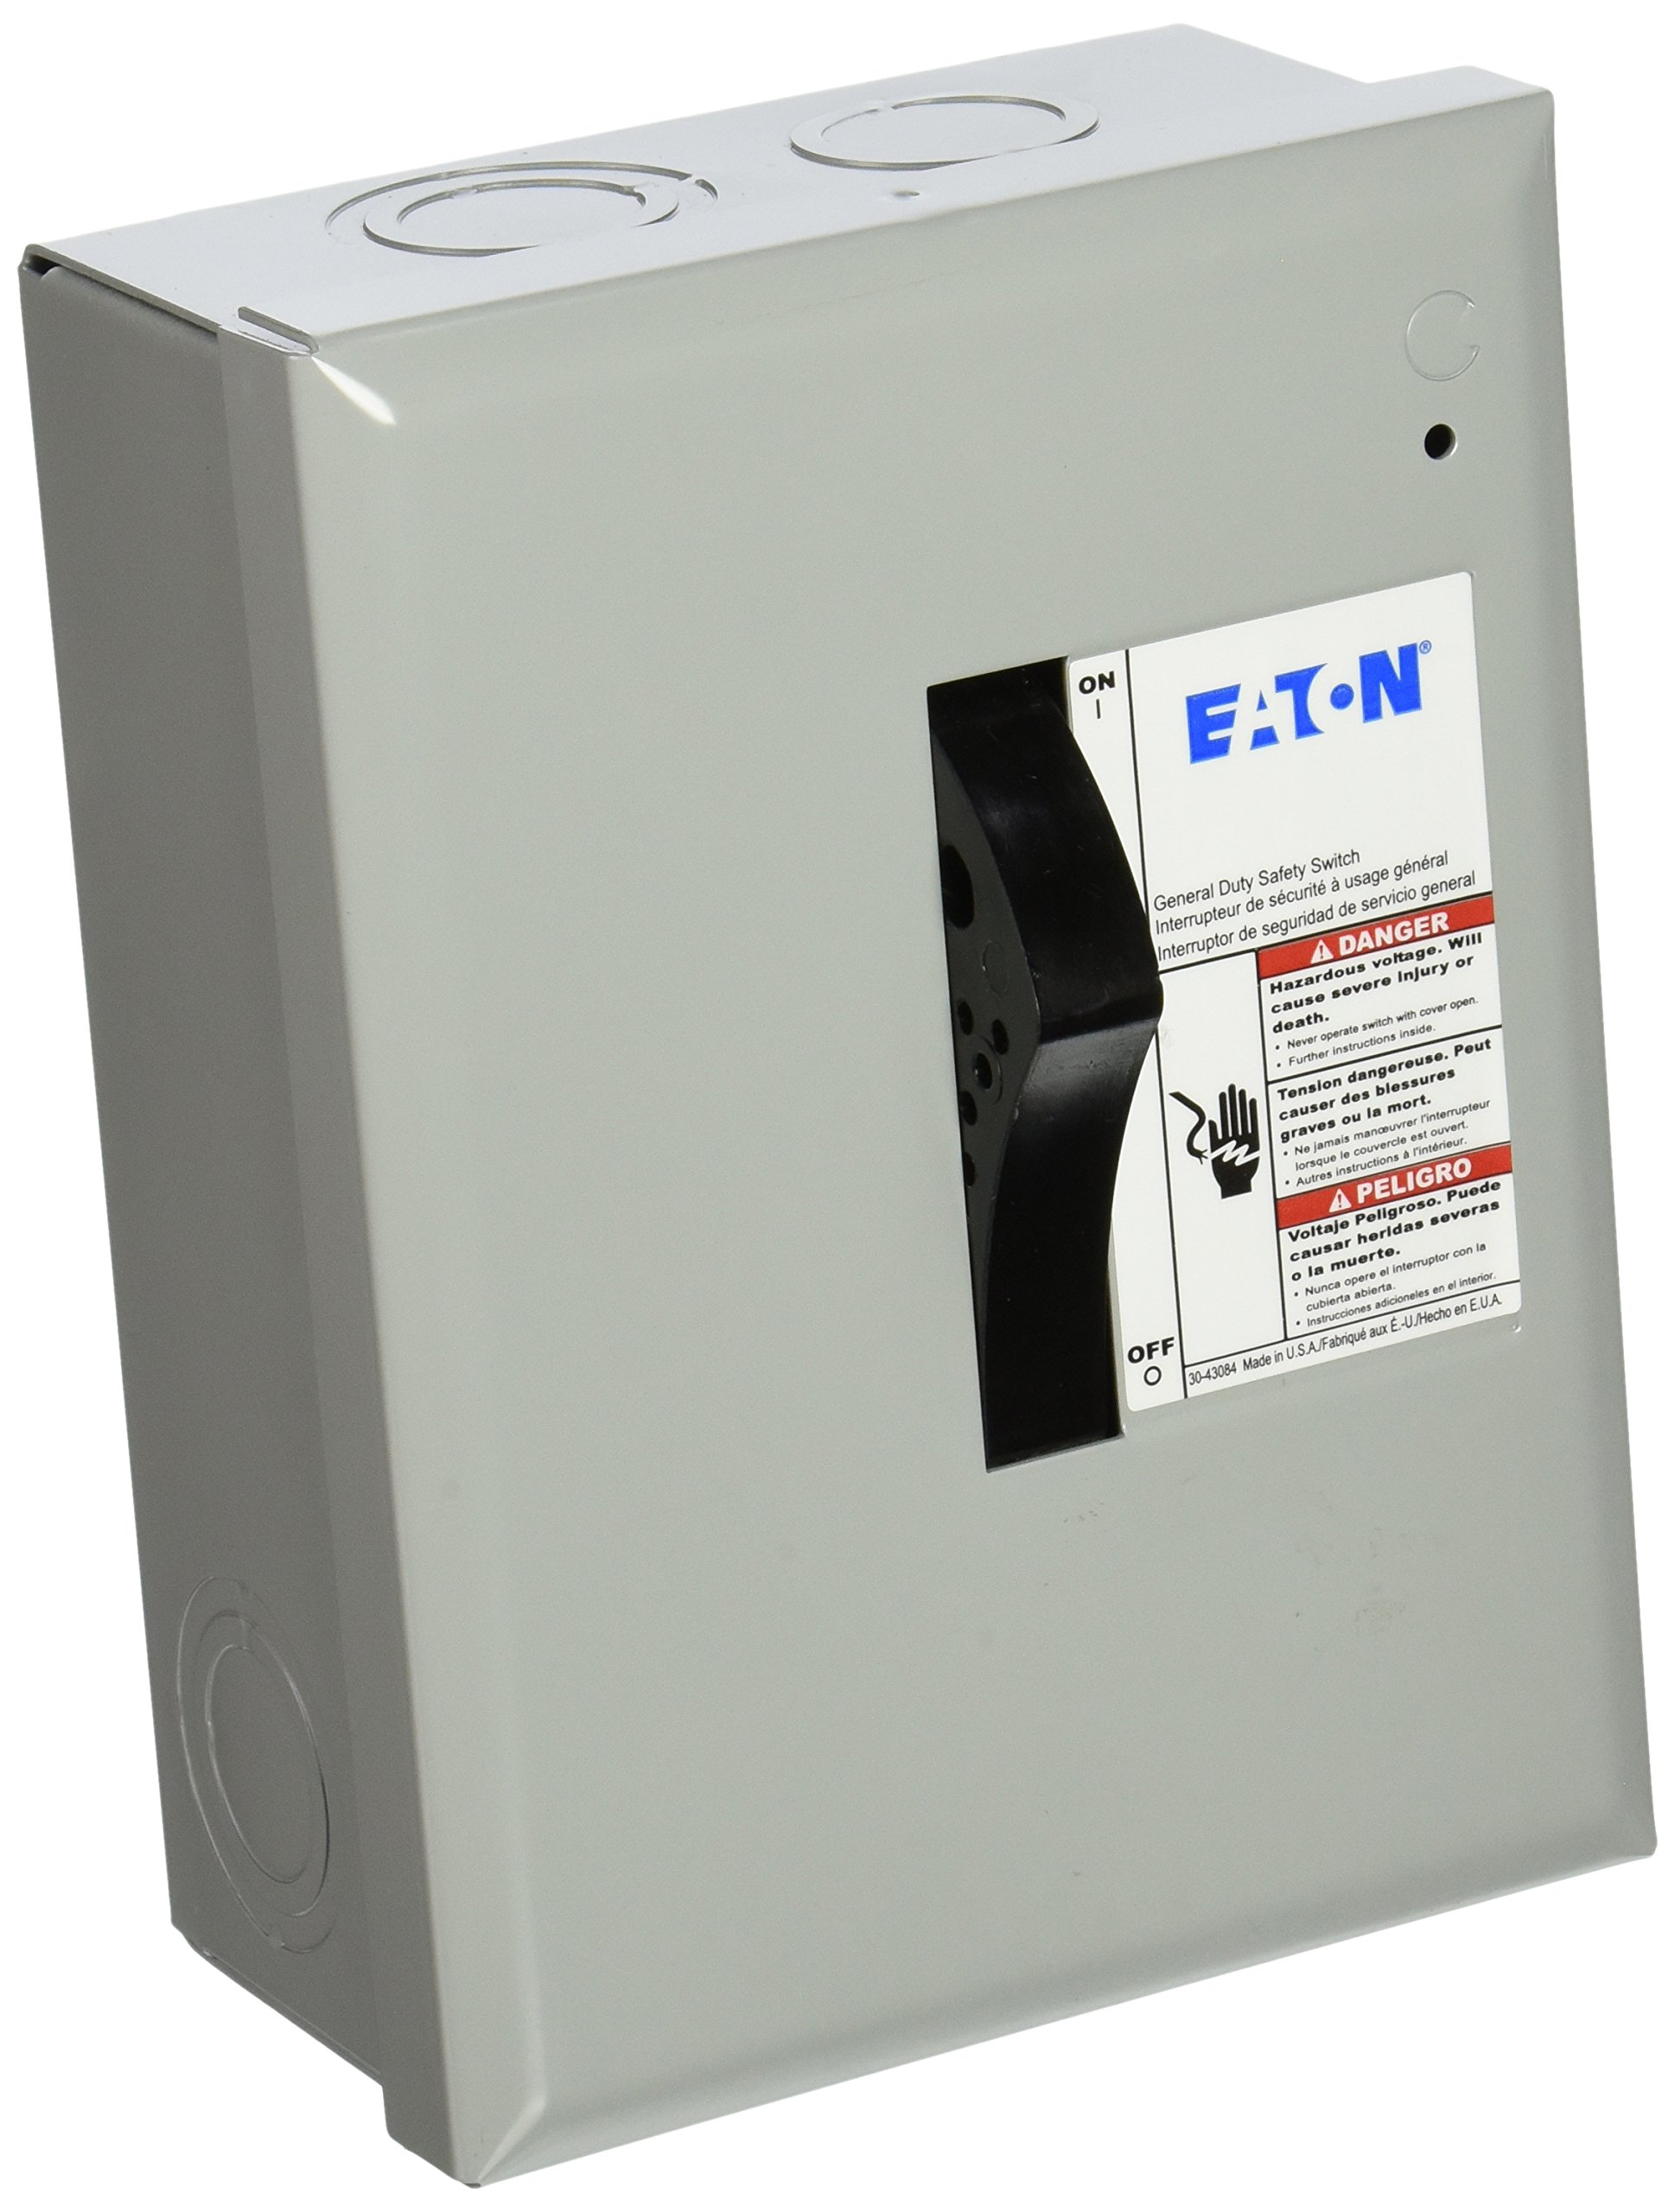 Eaton Corporation Dp221Ngb Indoor Safety Switch, 120/240V, 30-Amp